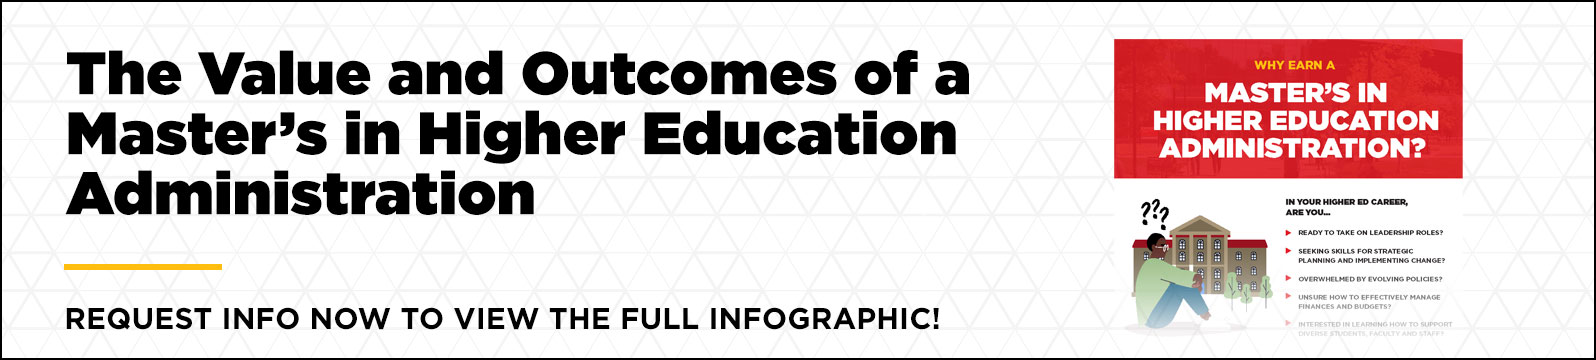 Is earning a master's in higher education online worth it University of Louisville Infographic